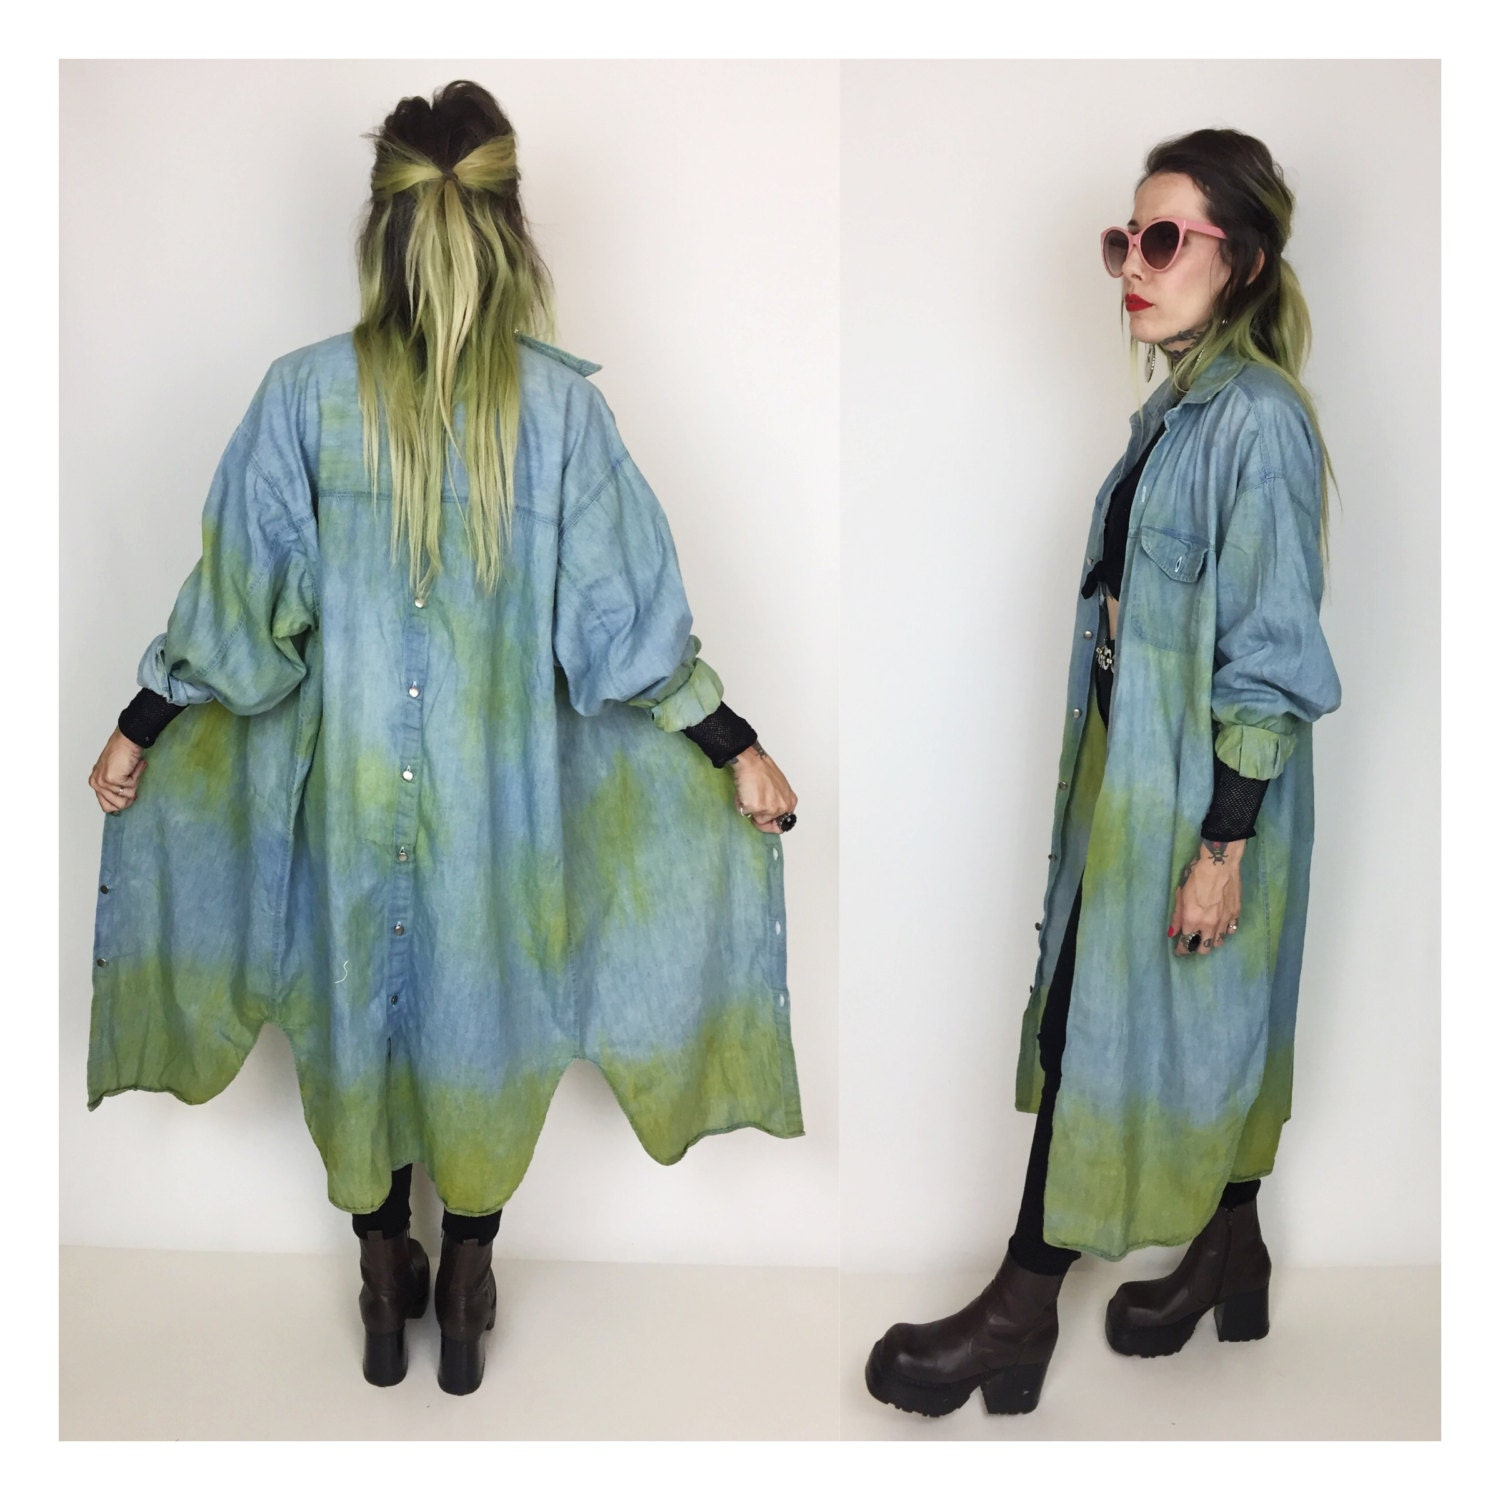 d92070999ab ... Medium - Unisex GRUNGE Long Denim Duster Jacket Button Up Rustic Shirt  Dress. gallery photo ...